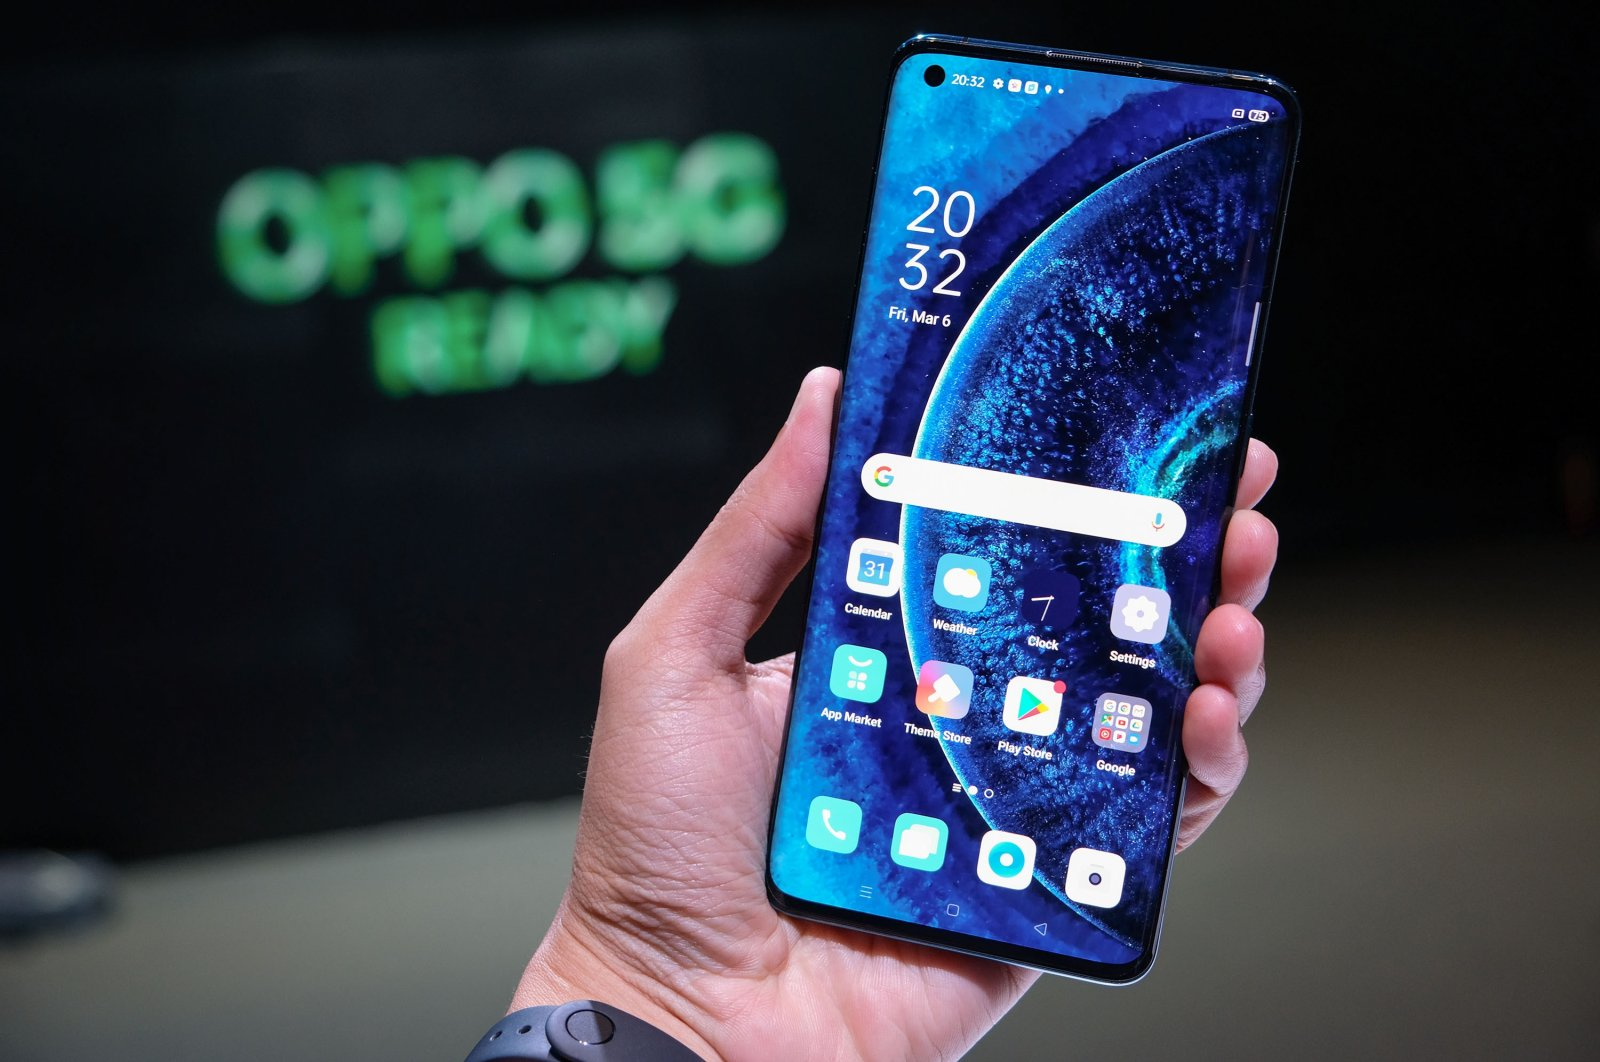 Oppo's new smartphone OPPO Find X2 Series 5G, Bangkok, Thailand, March 6, 2020. :on March 6, 2020. (Shutterstock Photo)